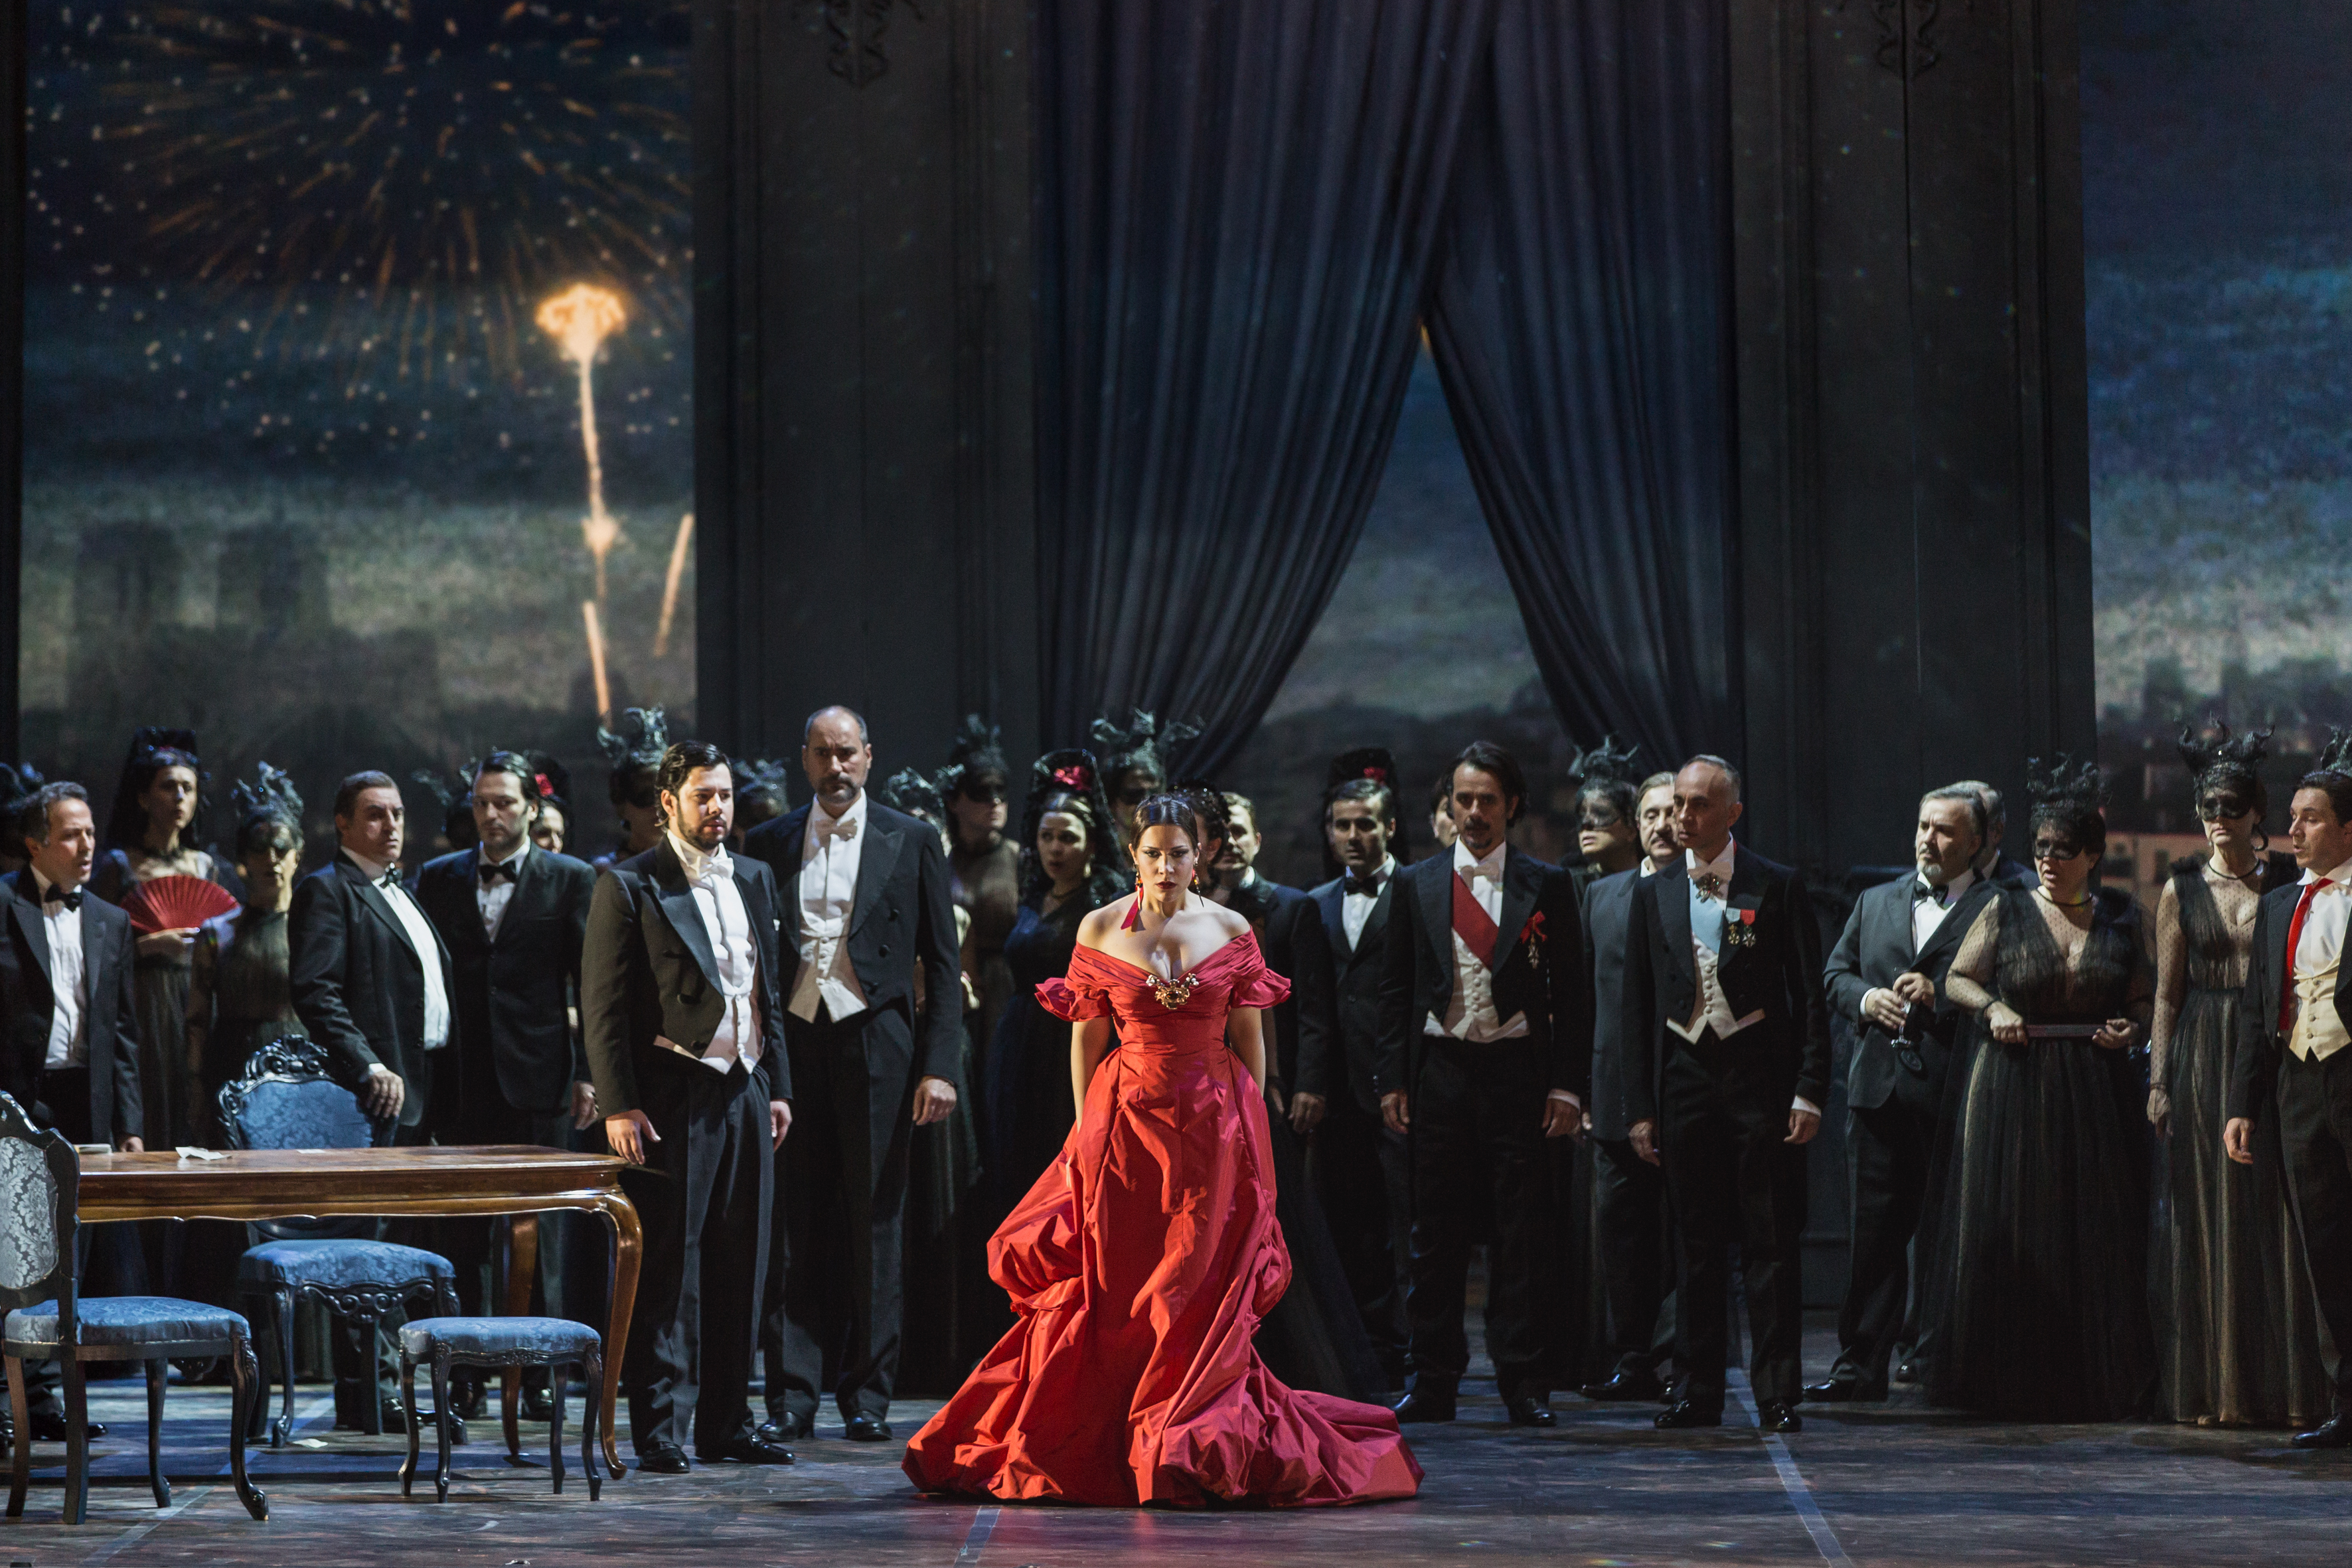 The debut of the new production of La Traviata at the Teatre dell?Opera di Roma marks a lot of firsts. This will be the first time, for instance, that soprano Francesca Dotto will be performing arias in four-inch heels. It?s a small detail, but a telling one: This is an opera unlike any other.